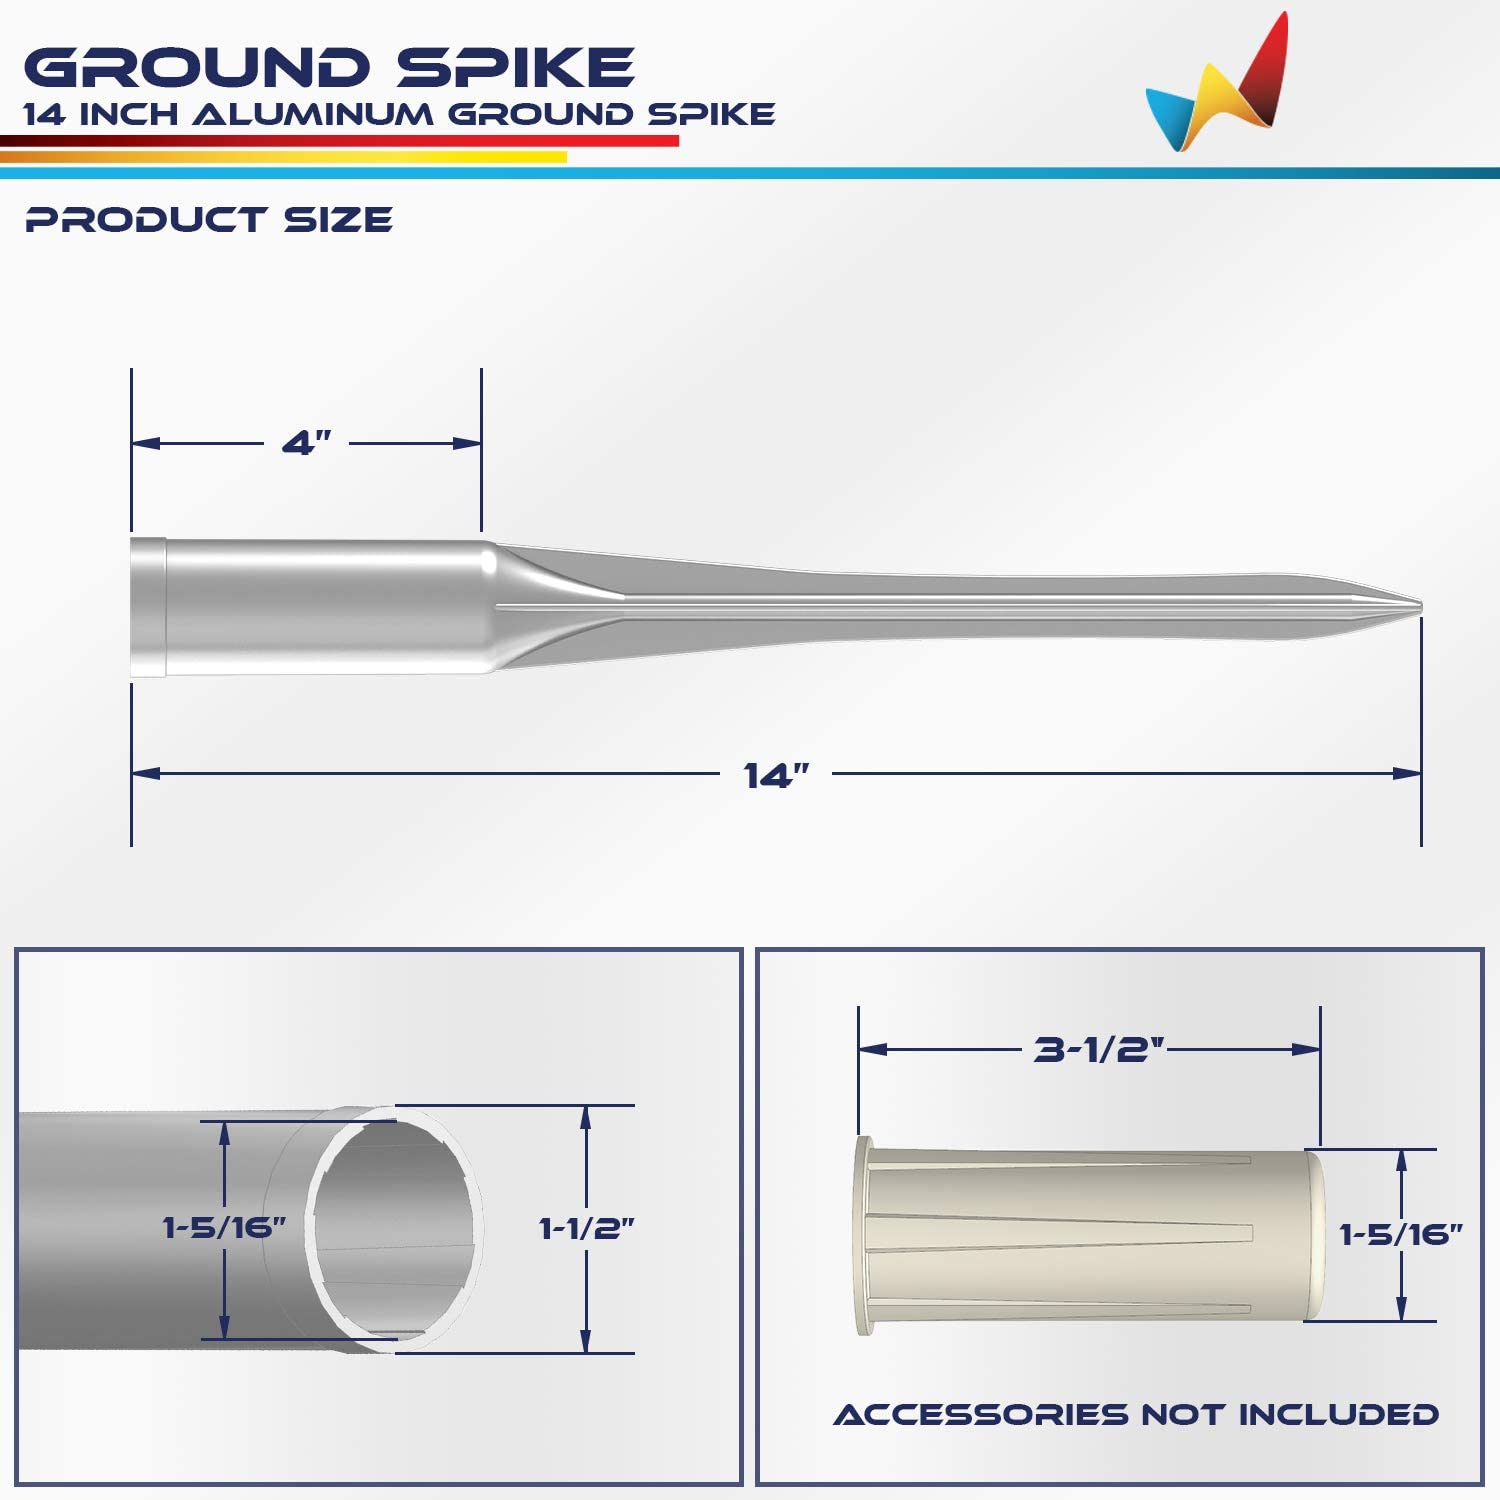 Windscreen4less Fence Post Anchor Ground Spikes 1-5//16 ID Round Pole Holder Socket Sleeve for Dirt Clay Grass Aluminum Pack of 5